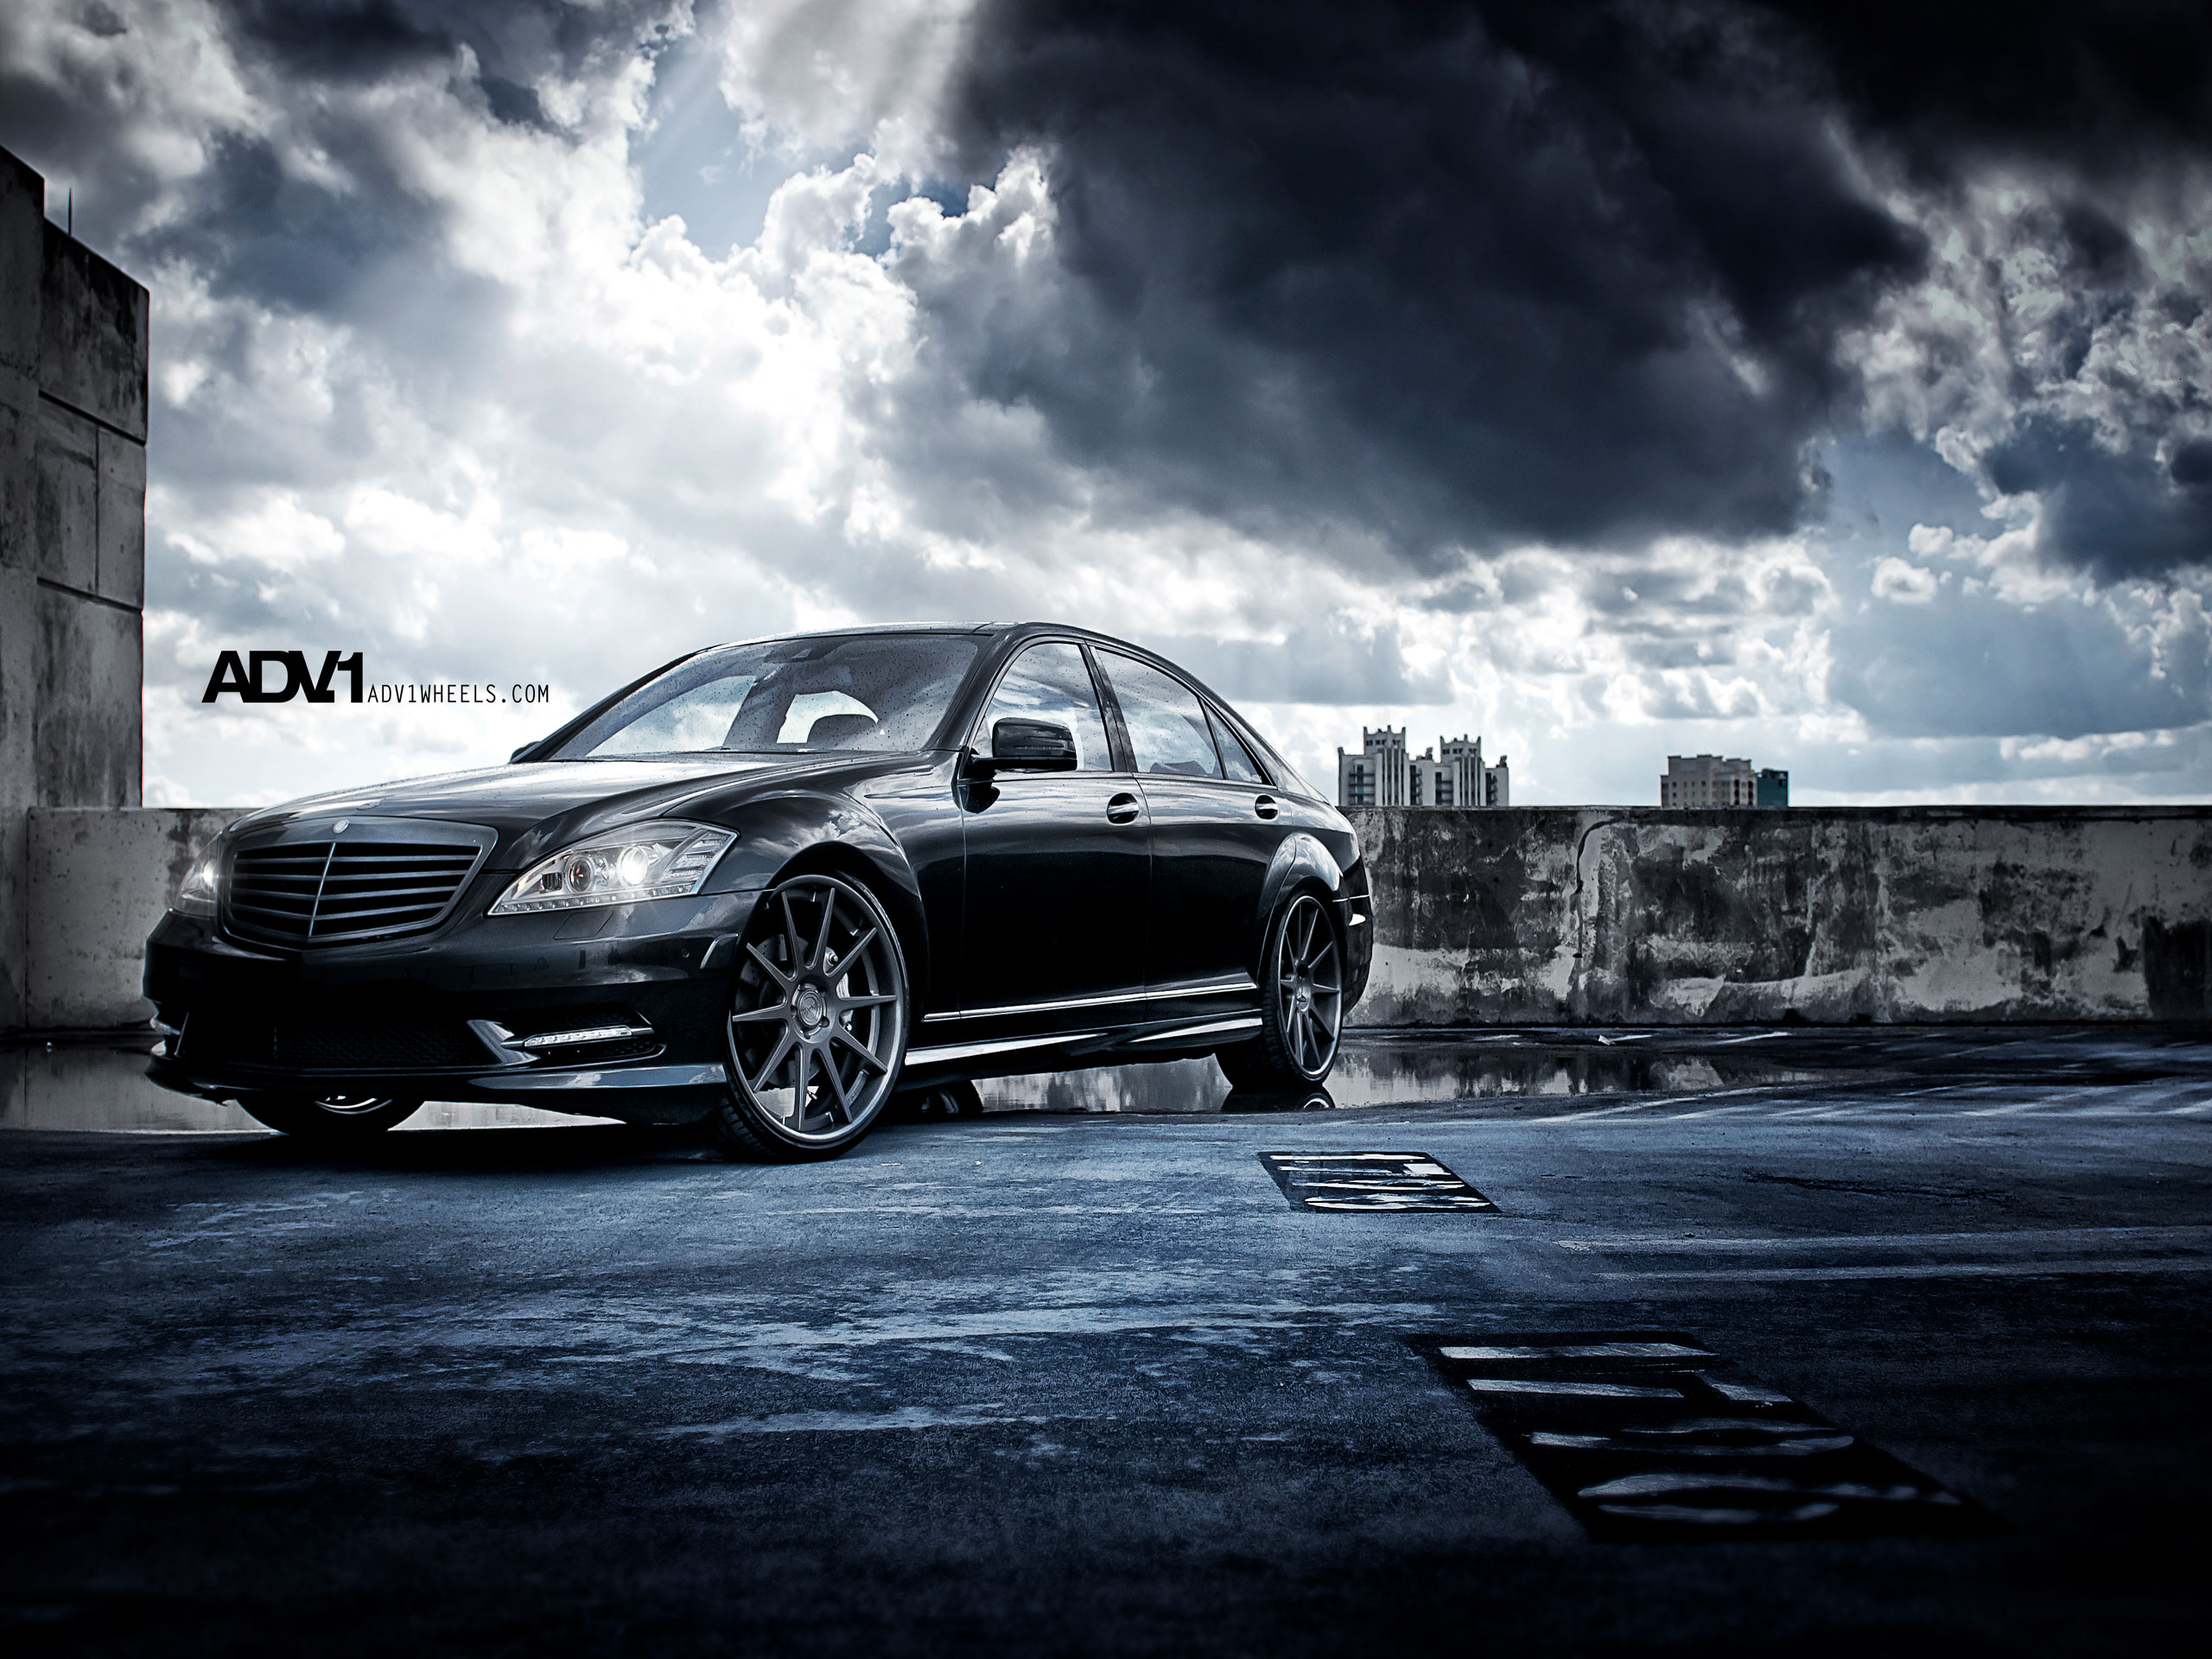 50 HD Backgrounds and Wallpapers of Mercedes Benz For Download 2560x1920